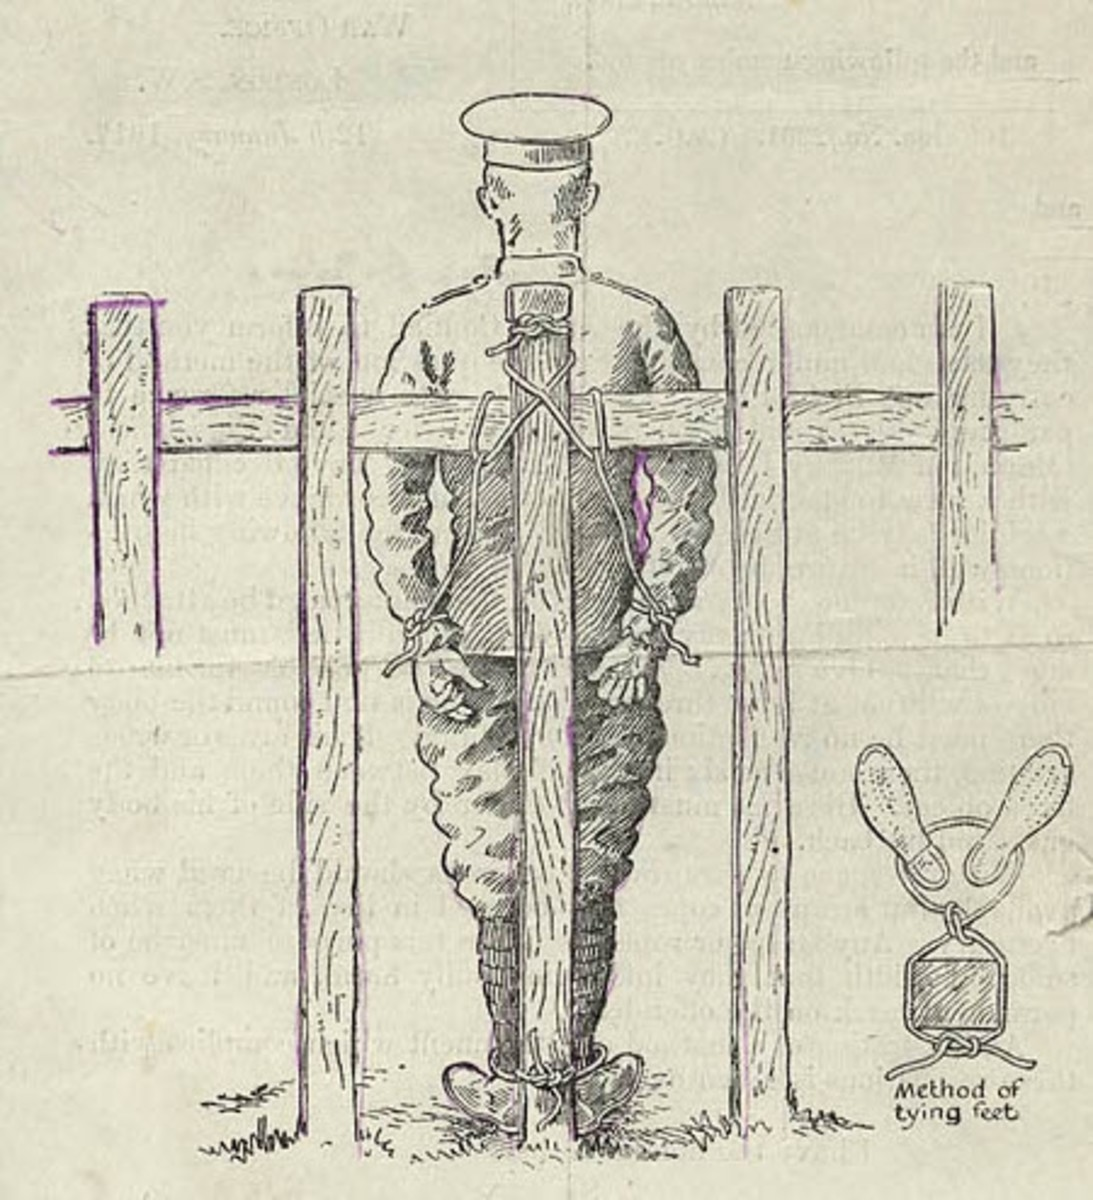 Illustration of Field Punishment Number One. The prisoner is tied to a stationary object, often times a gun carriage wheel and sometimes within enemy artillery range.